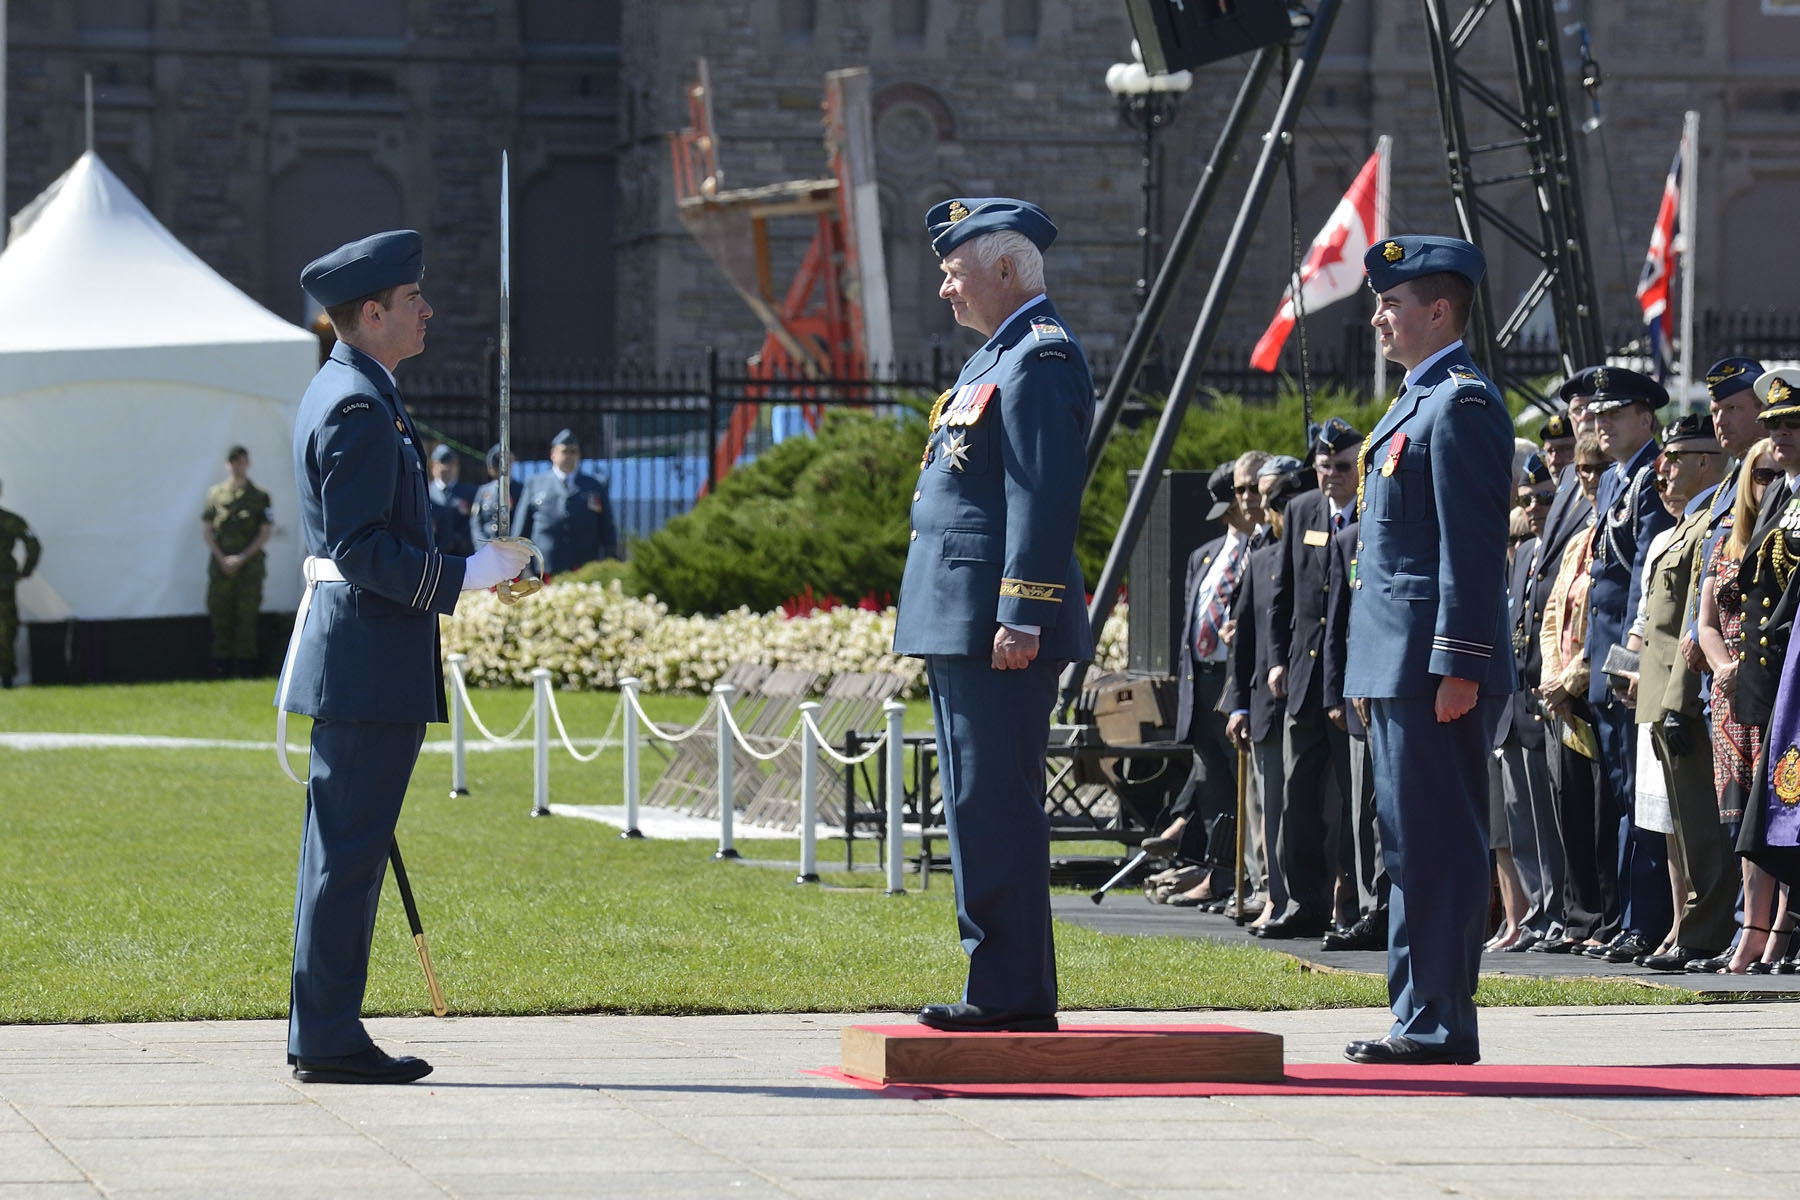 His Excellency the Right Honourable David Johnston, Governor General and Commander-in-Chief of Canada, took part in the national ceremony marking the 75th anniversary of the Battle of Britain on September 20, 2015, on Parliament Hill.